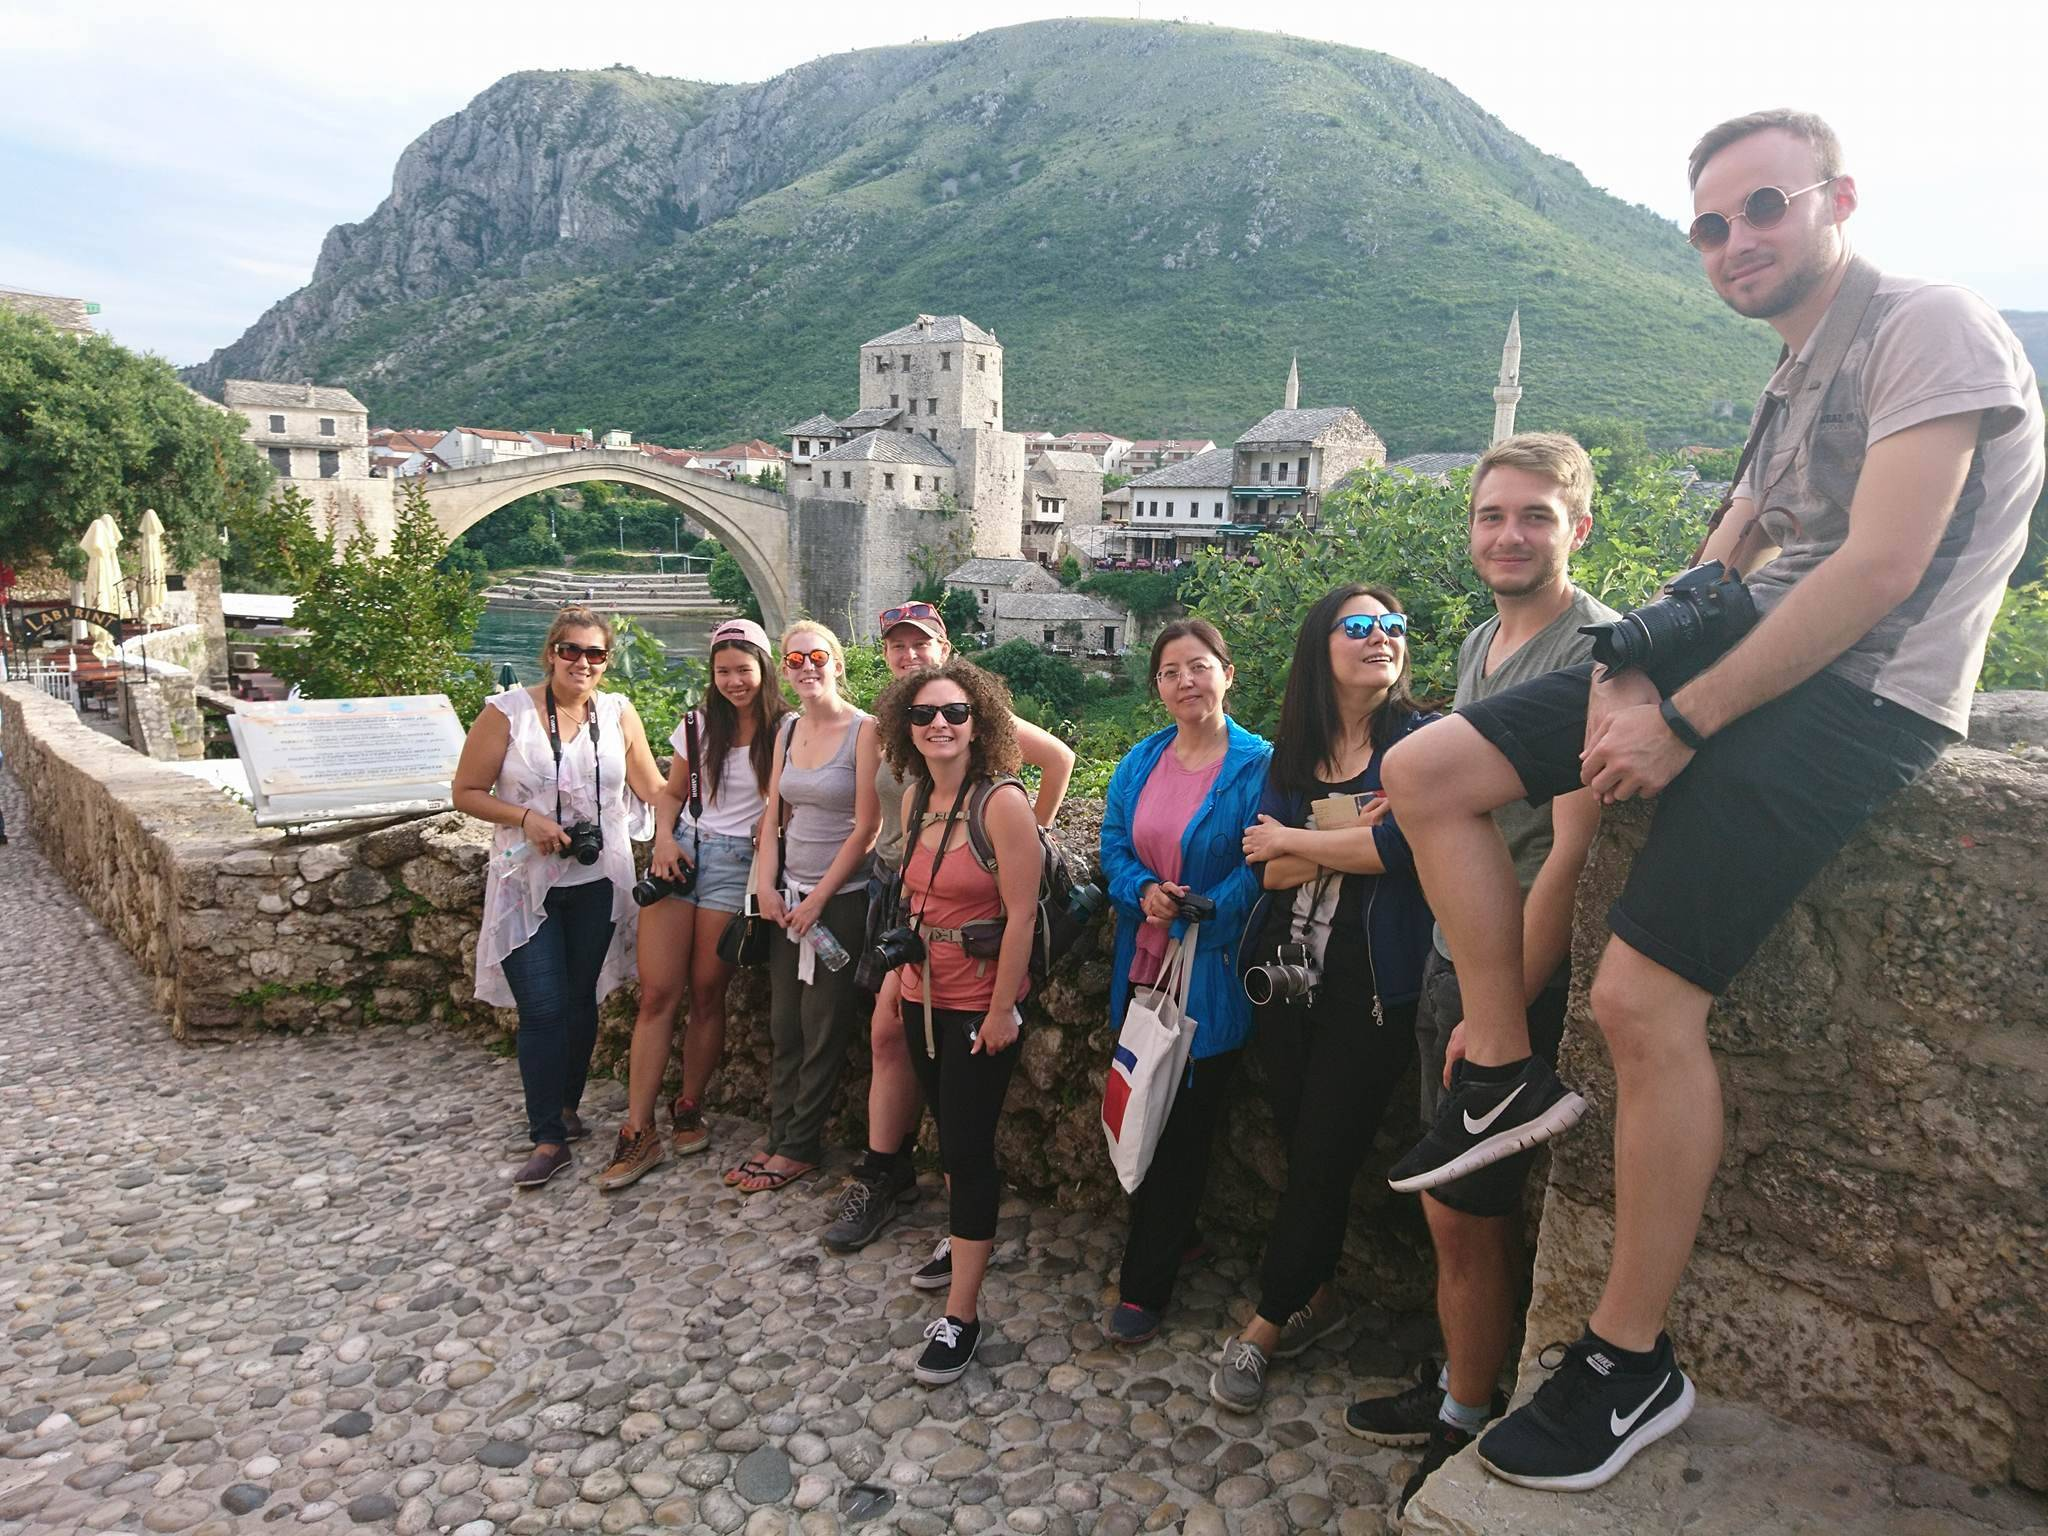 Hit Booker Mostar | Luxury Villas | Holiday Homes | Apartments | Rooms | Tours free-walking-tour_hit-booker-2 Best things to do in Mostar in one epic video!